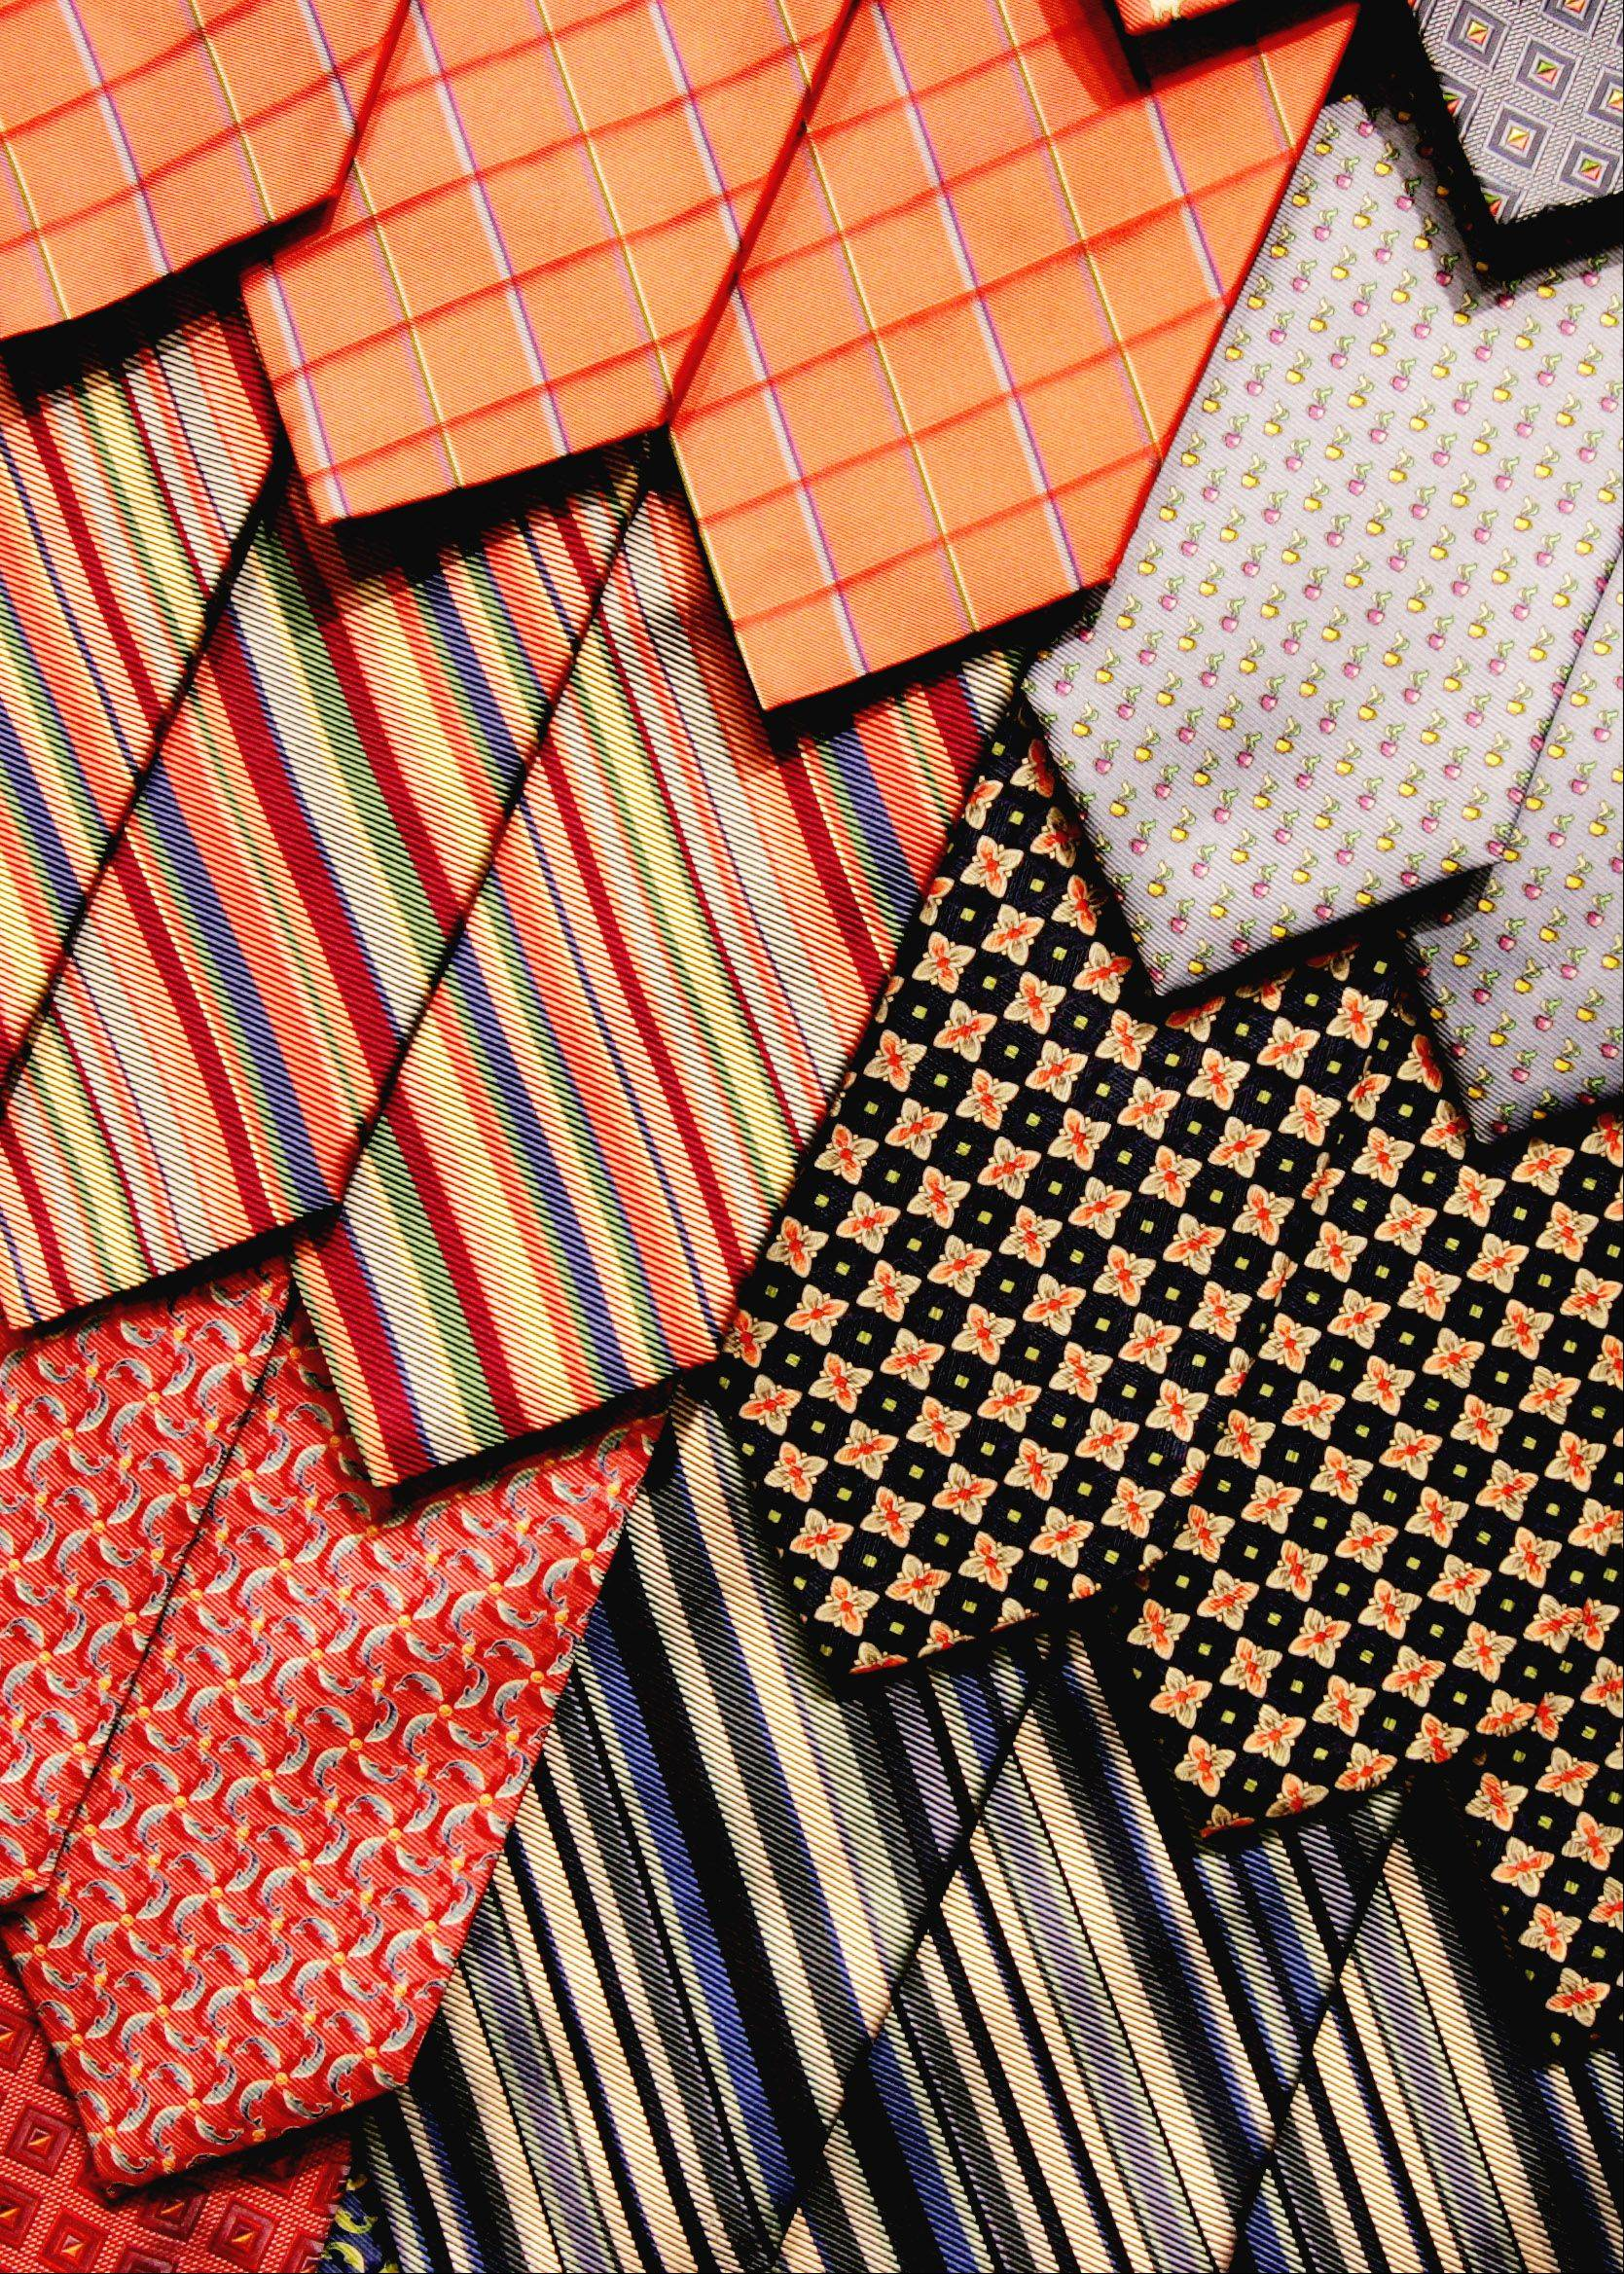 A necktie might be the fitting gift for a Father's Day holiday that always seems less important than Mother's Day.